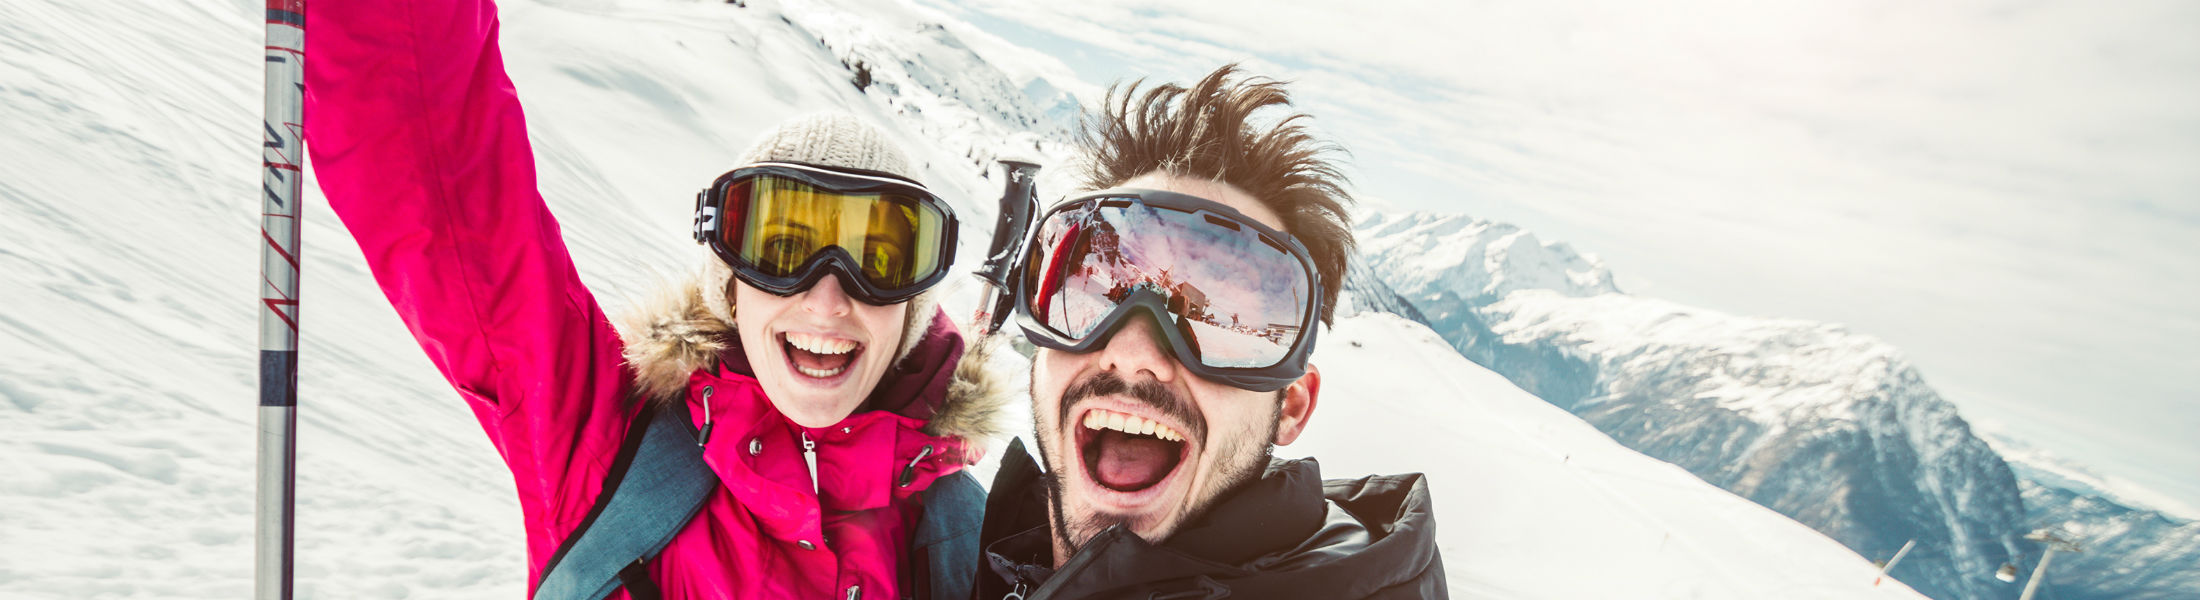 skier couple taking a selfie in the snow on a mountain